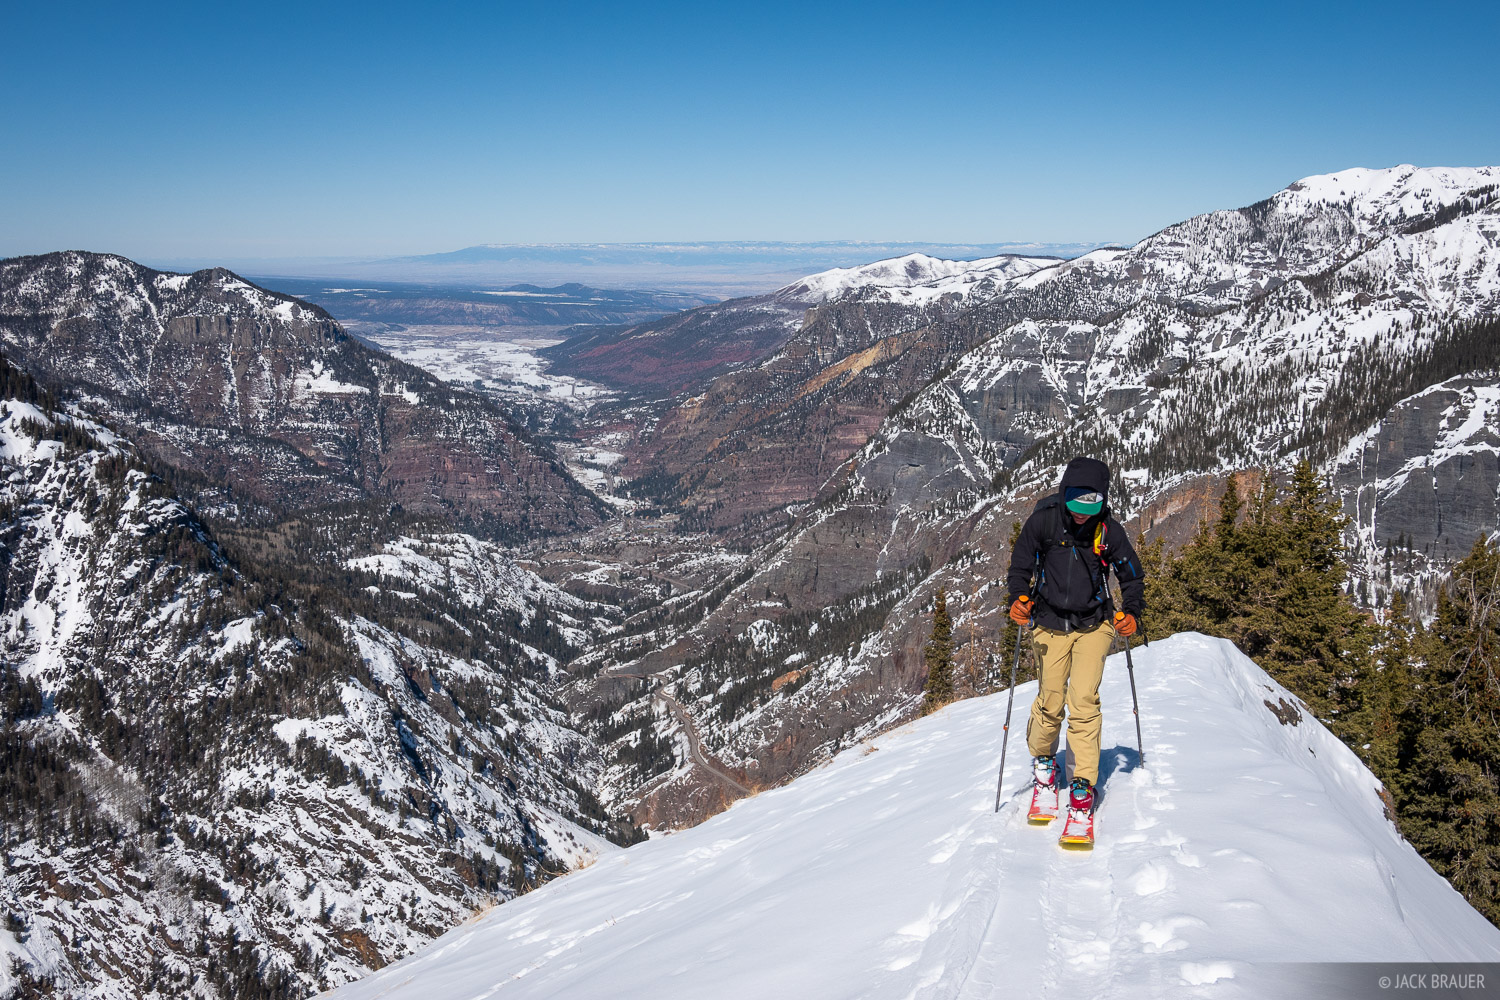 Nicole Skoloda skins up a ridge high above the town of Ouray. Grand Mesa is visible way off in the distance to the north.